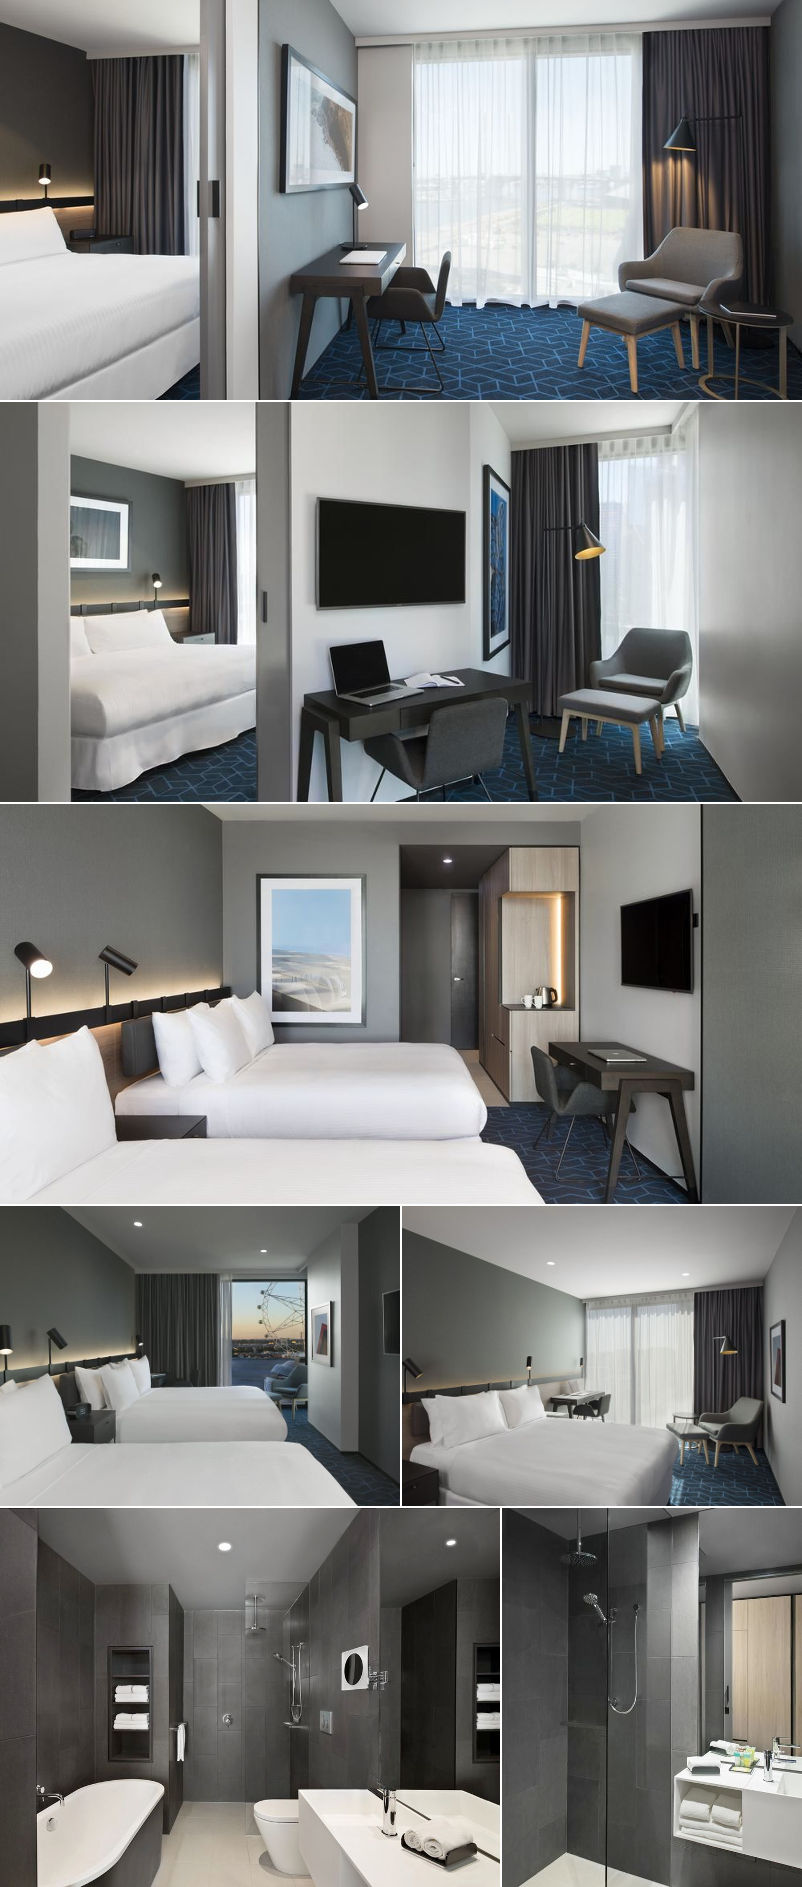 Four Points by Sheraton Docklands - Rooms